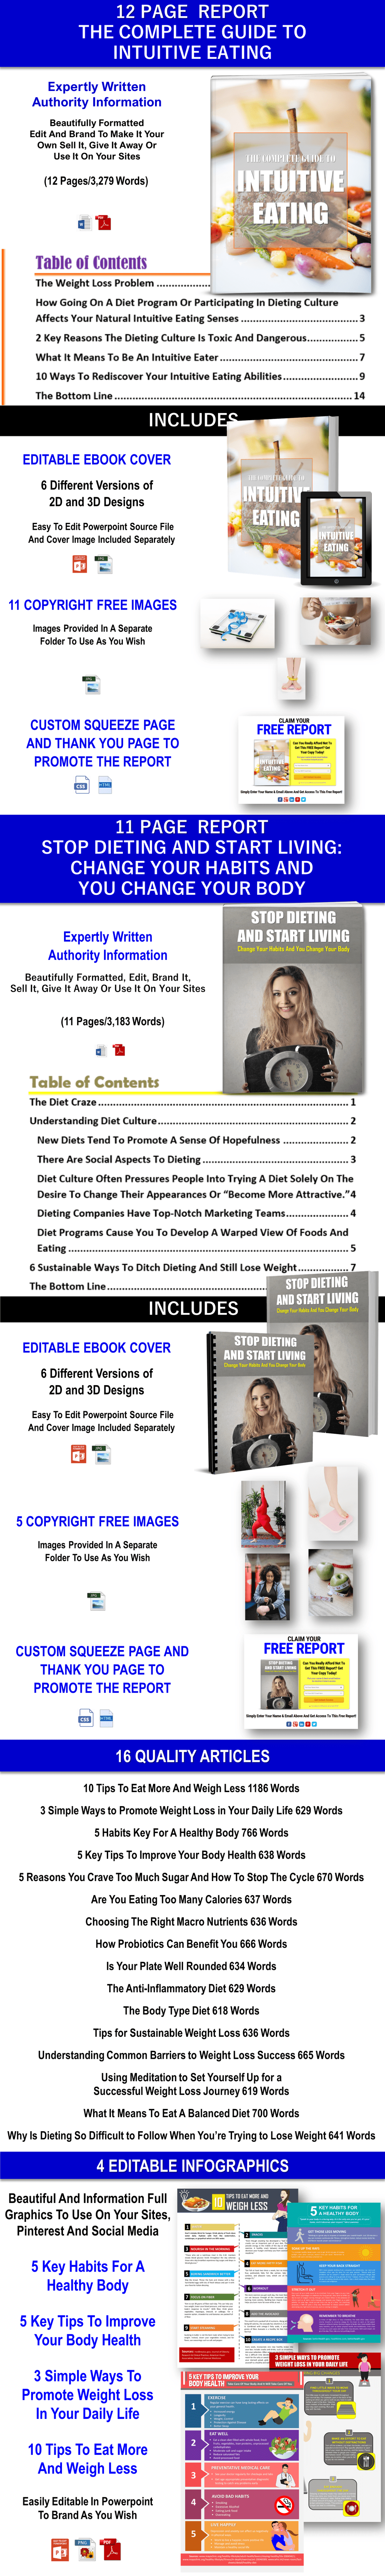 Intuitive Eating Report, Stop Dieting Report, 10 Articles, 4 Infographics Private Label Rights